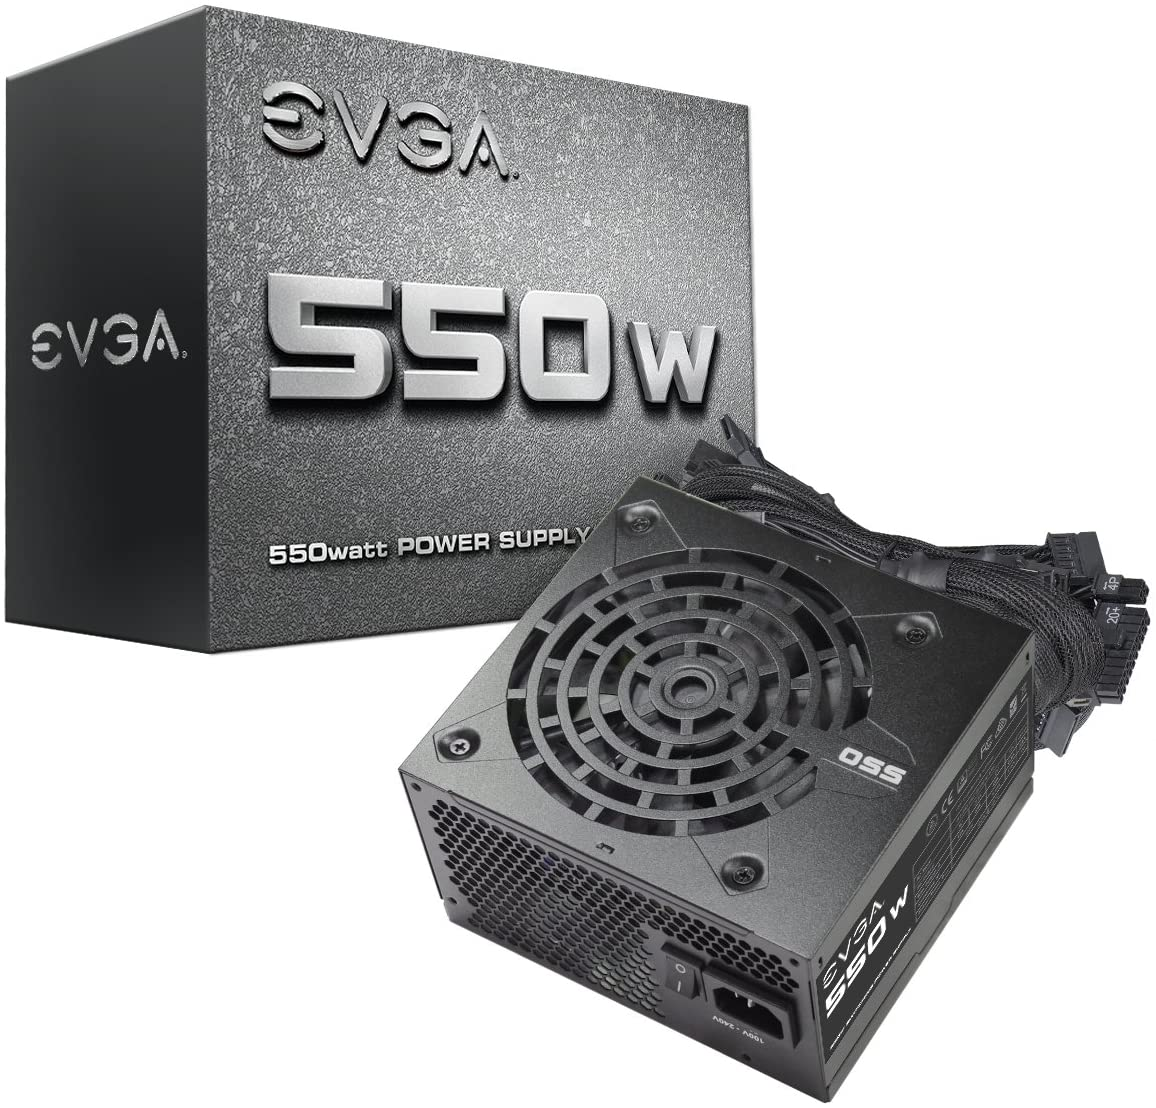 EVGA GeForce RTX 3080 XC3 ULTRA GAMING + EVGA PSU 550W + Fractal 40mm Fan COMBO BACKORDER